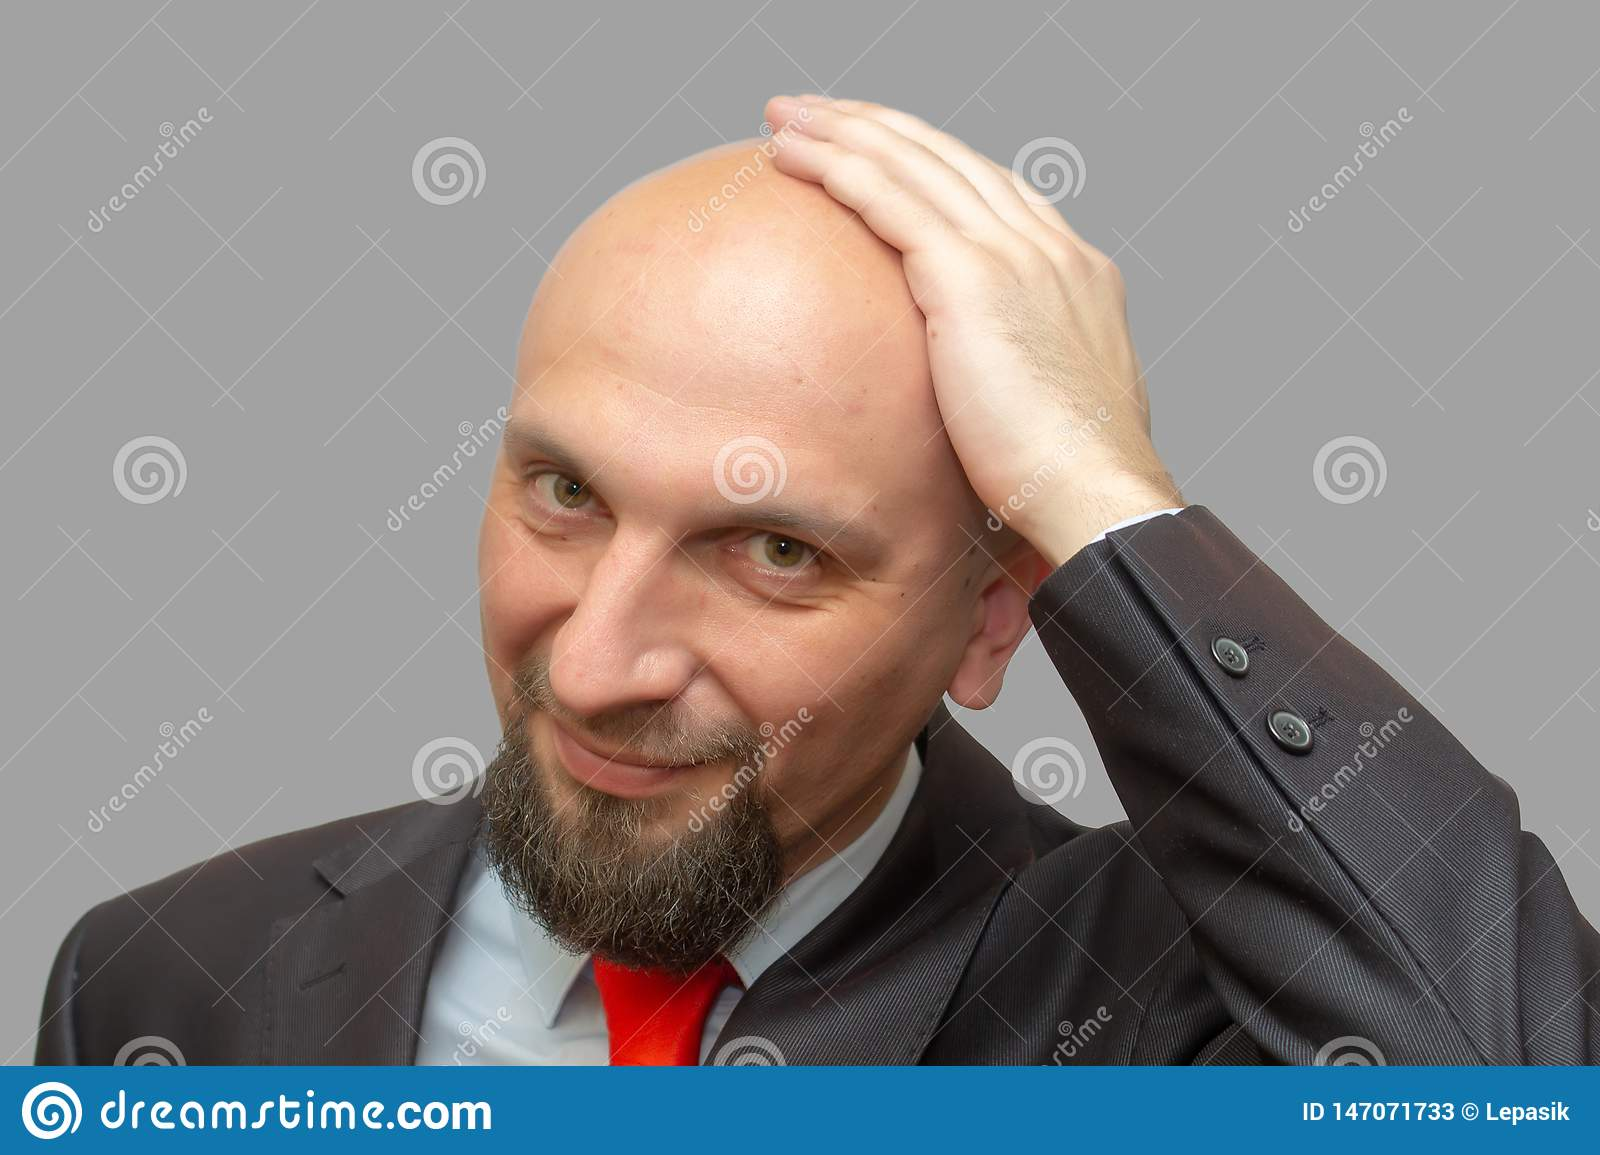 Bald man in suit, shaved head, gray background